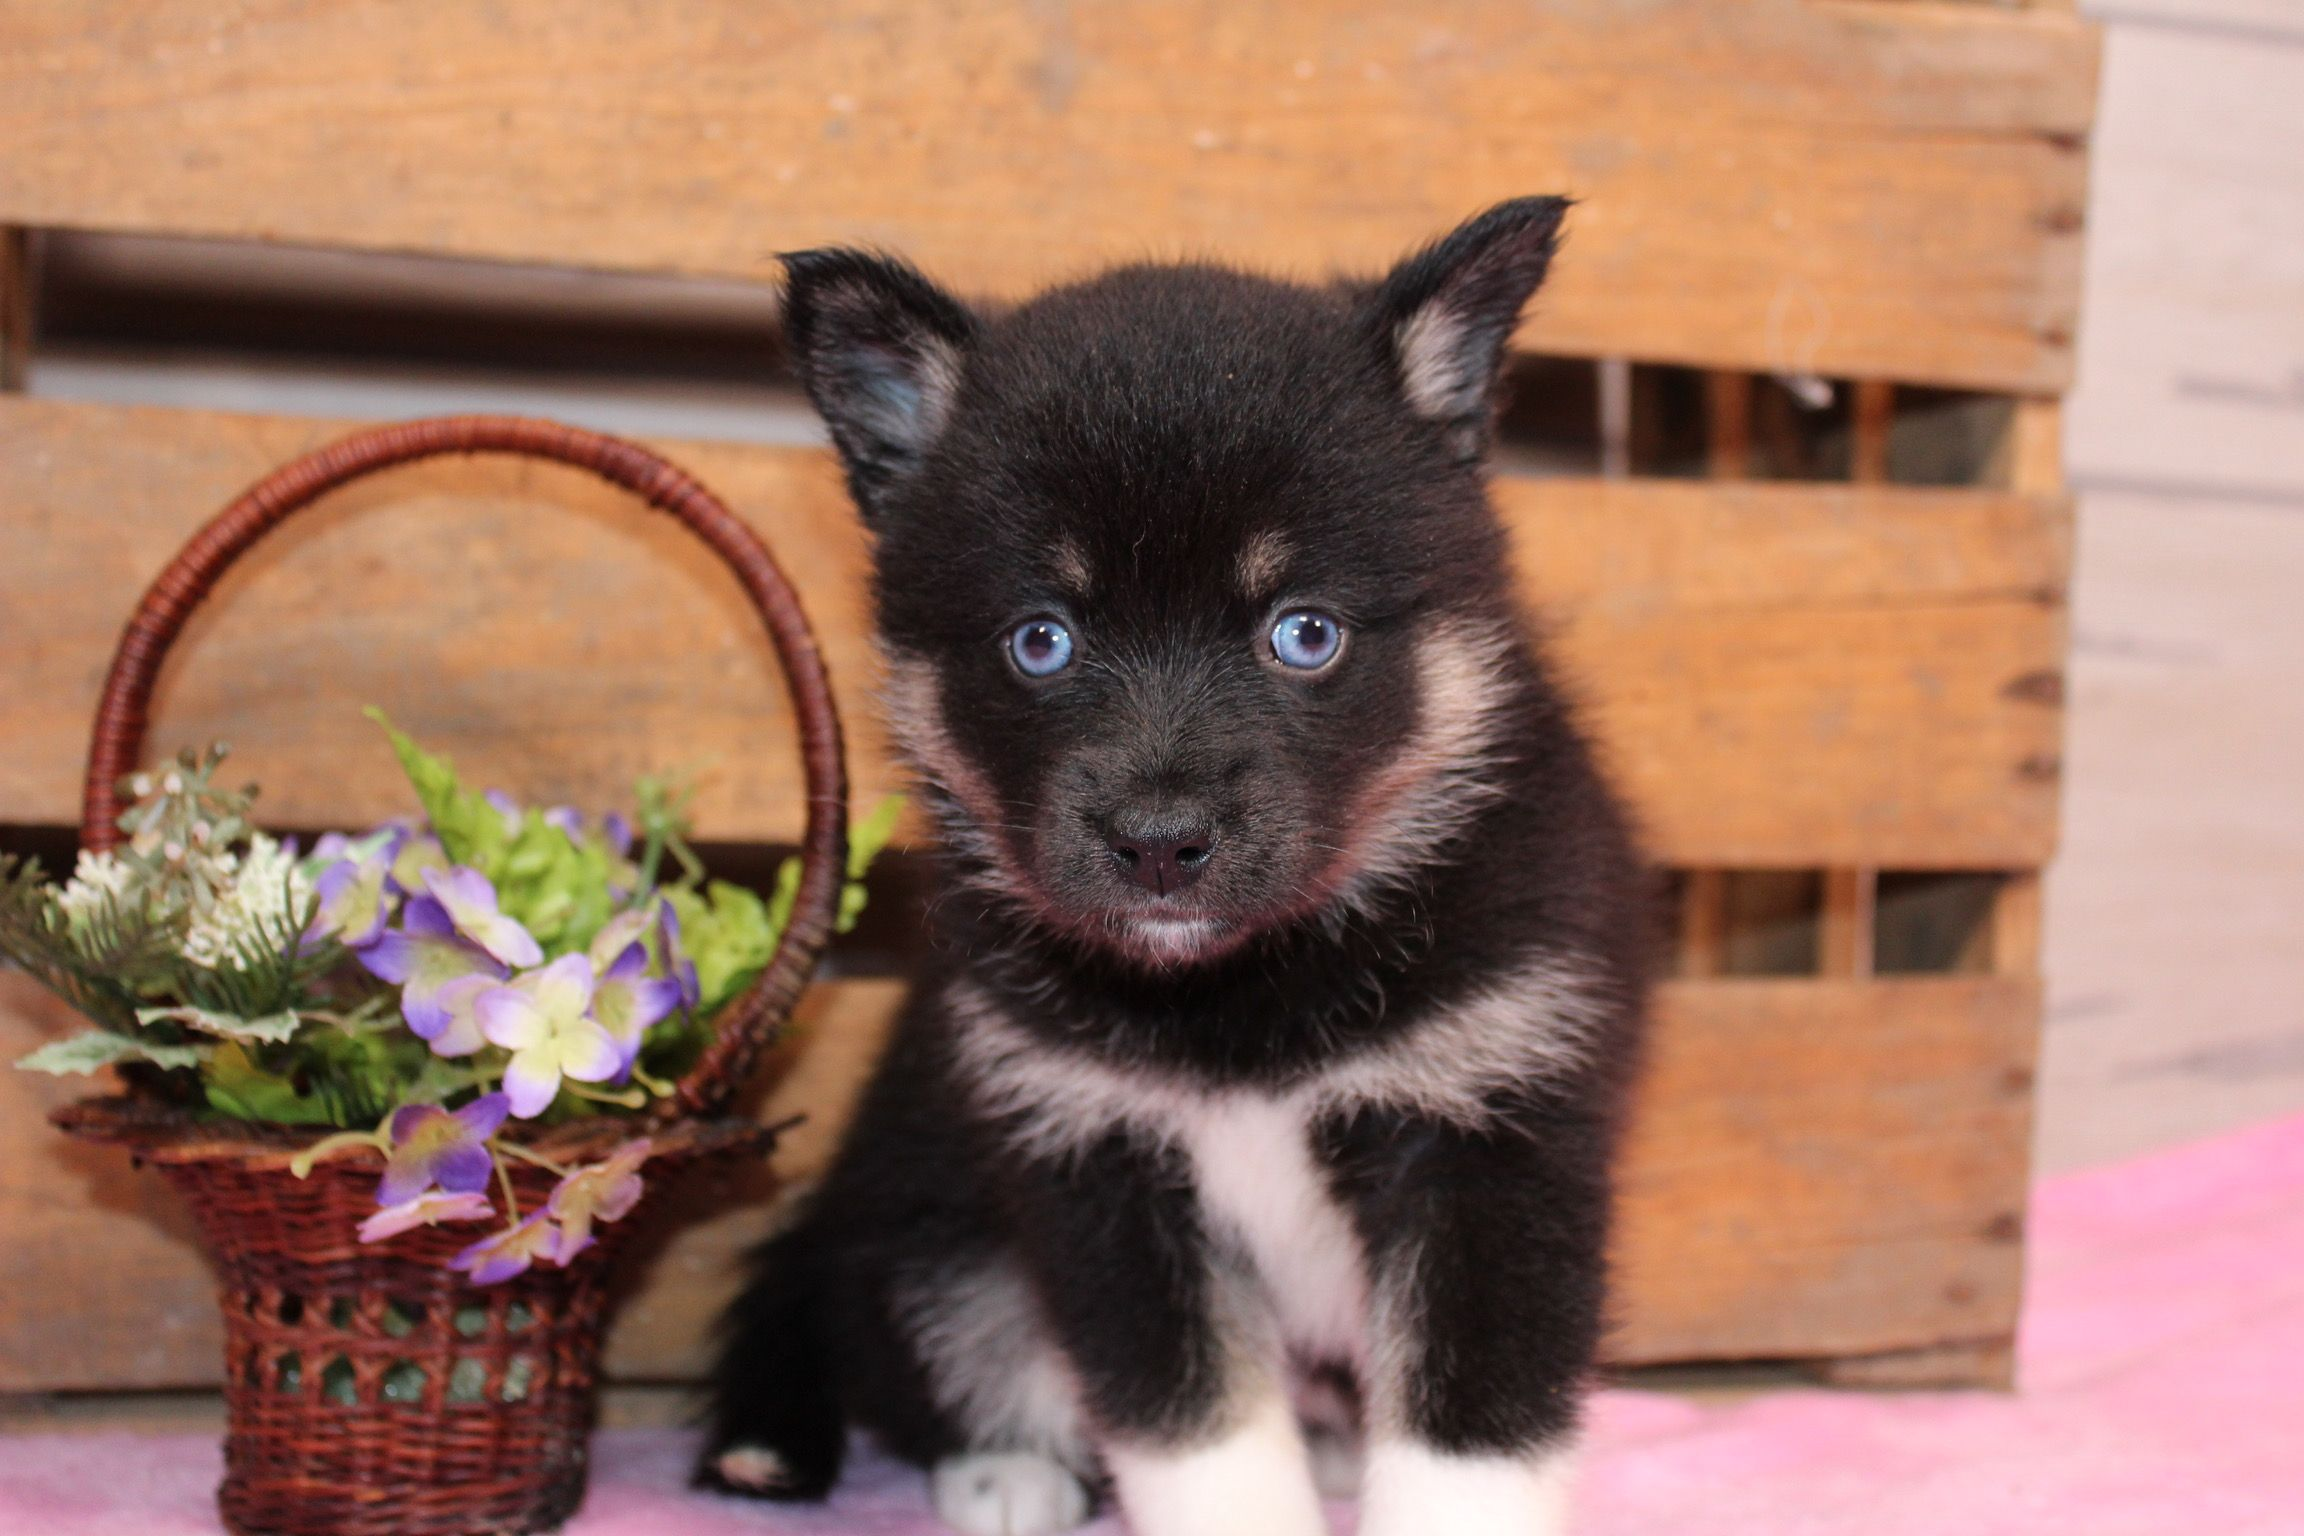 Sakari A Pomsky Puppy For Sale In Nappanee Indiana Find Cute Pomsky Puppies And Responsible Pomsky Breeders At Cute Puppies Images Puppies For Sale Puppies